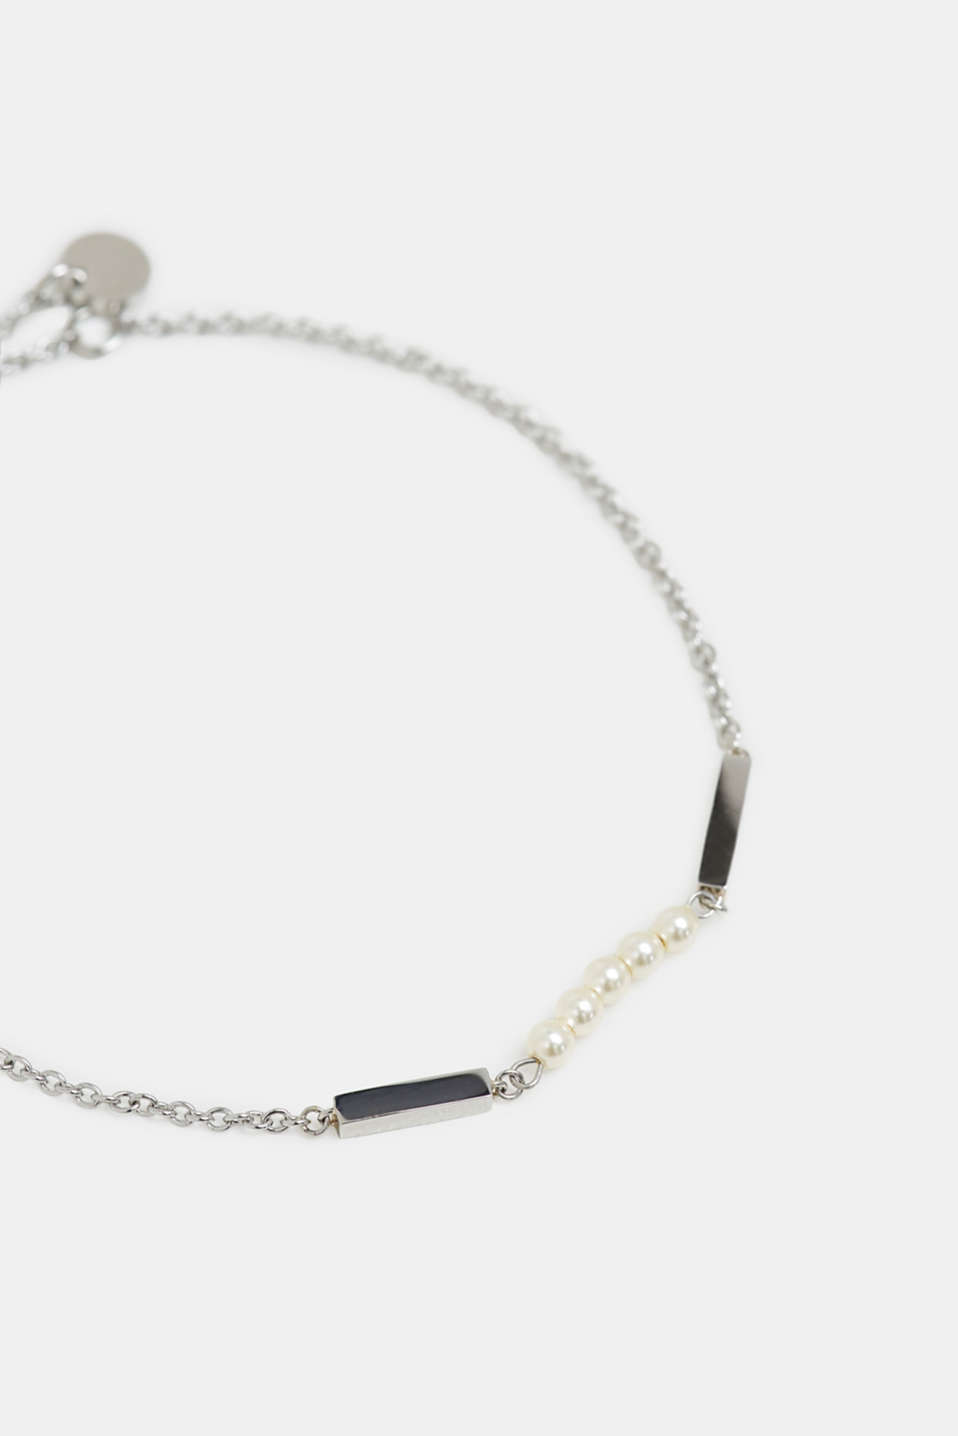 Dainty stainless-steel bracelet trimmed with beads, SILVER, detail image number 1